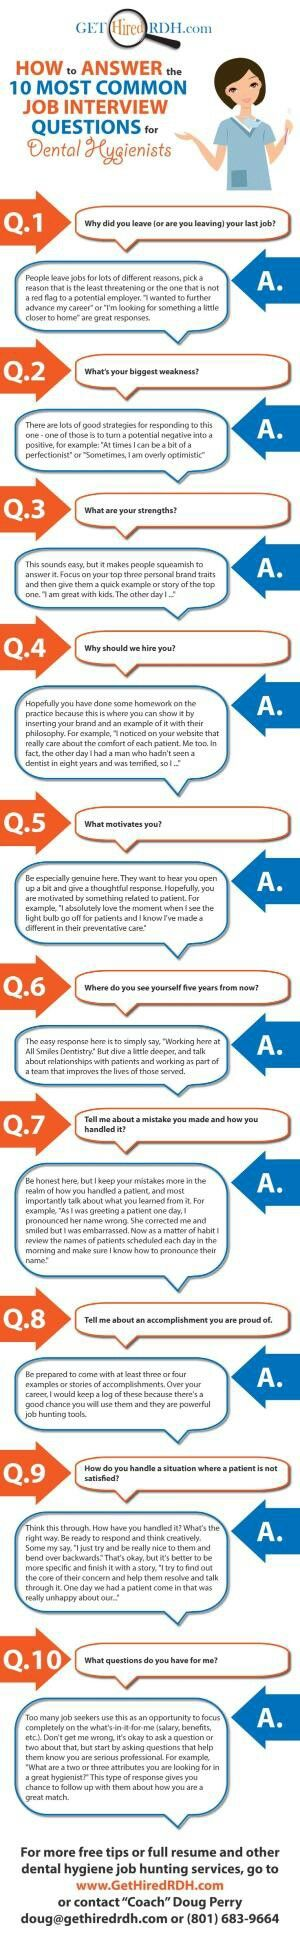 Attractive 6 Ways You Messed Up Your Job Interviewu2014And How To Avoid Them Next Time |  You Ve, Rounding And People